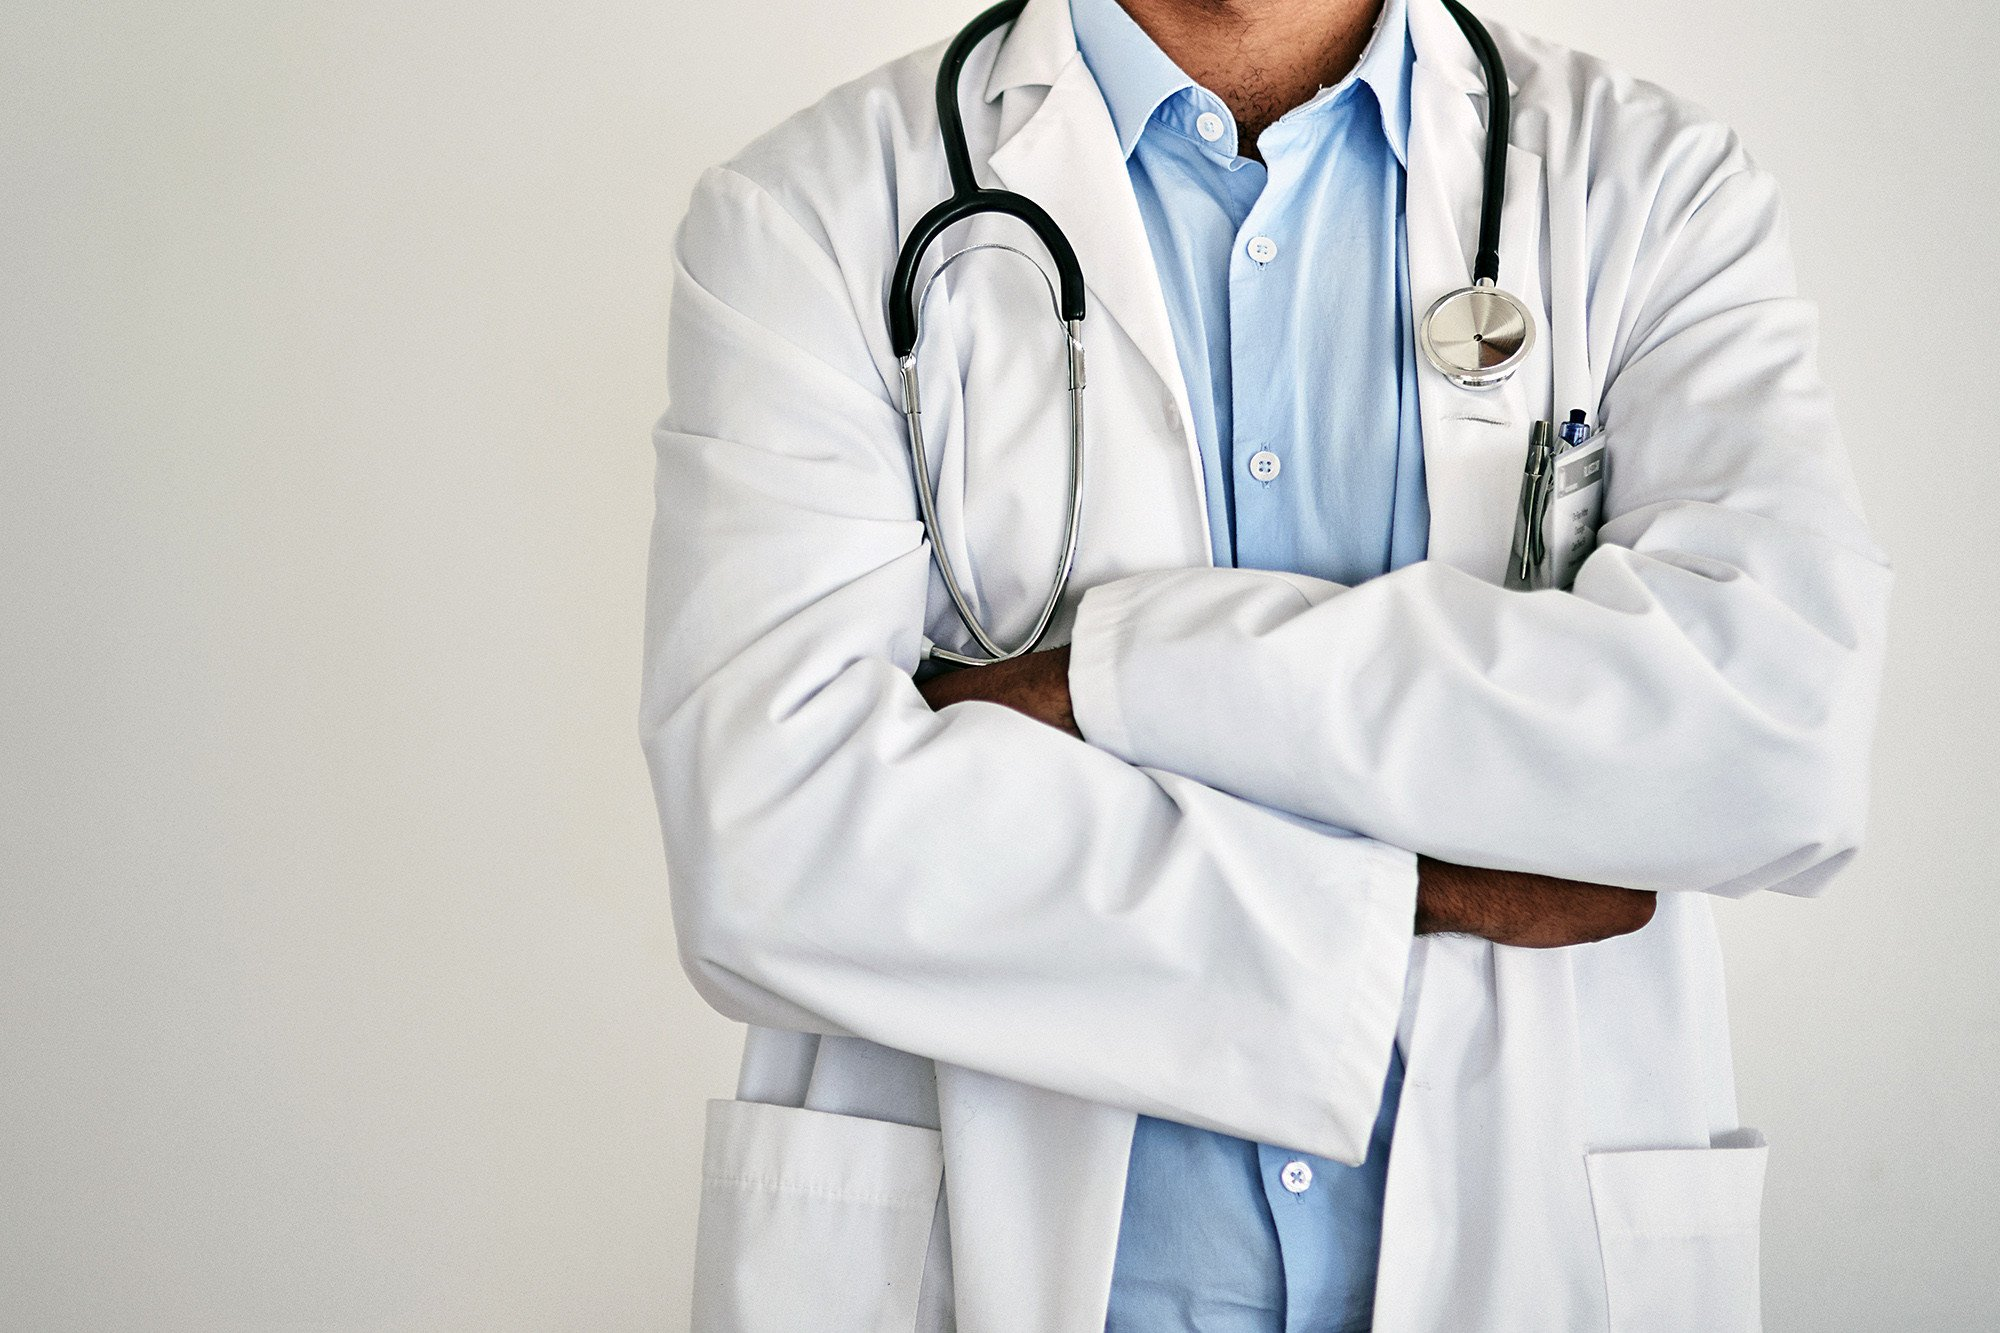 New policy protects providers who won't perform abortions